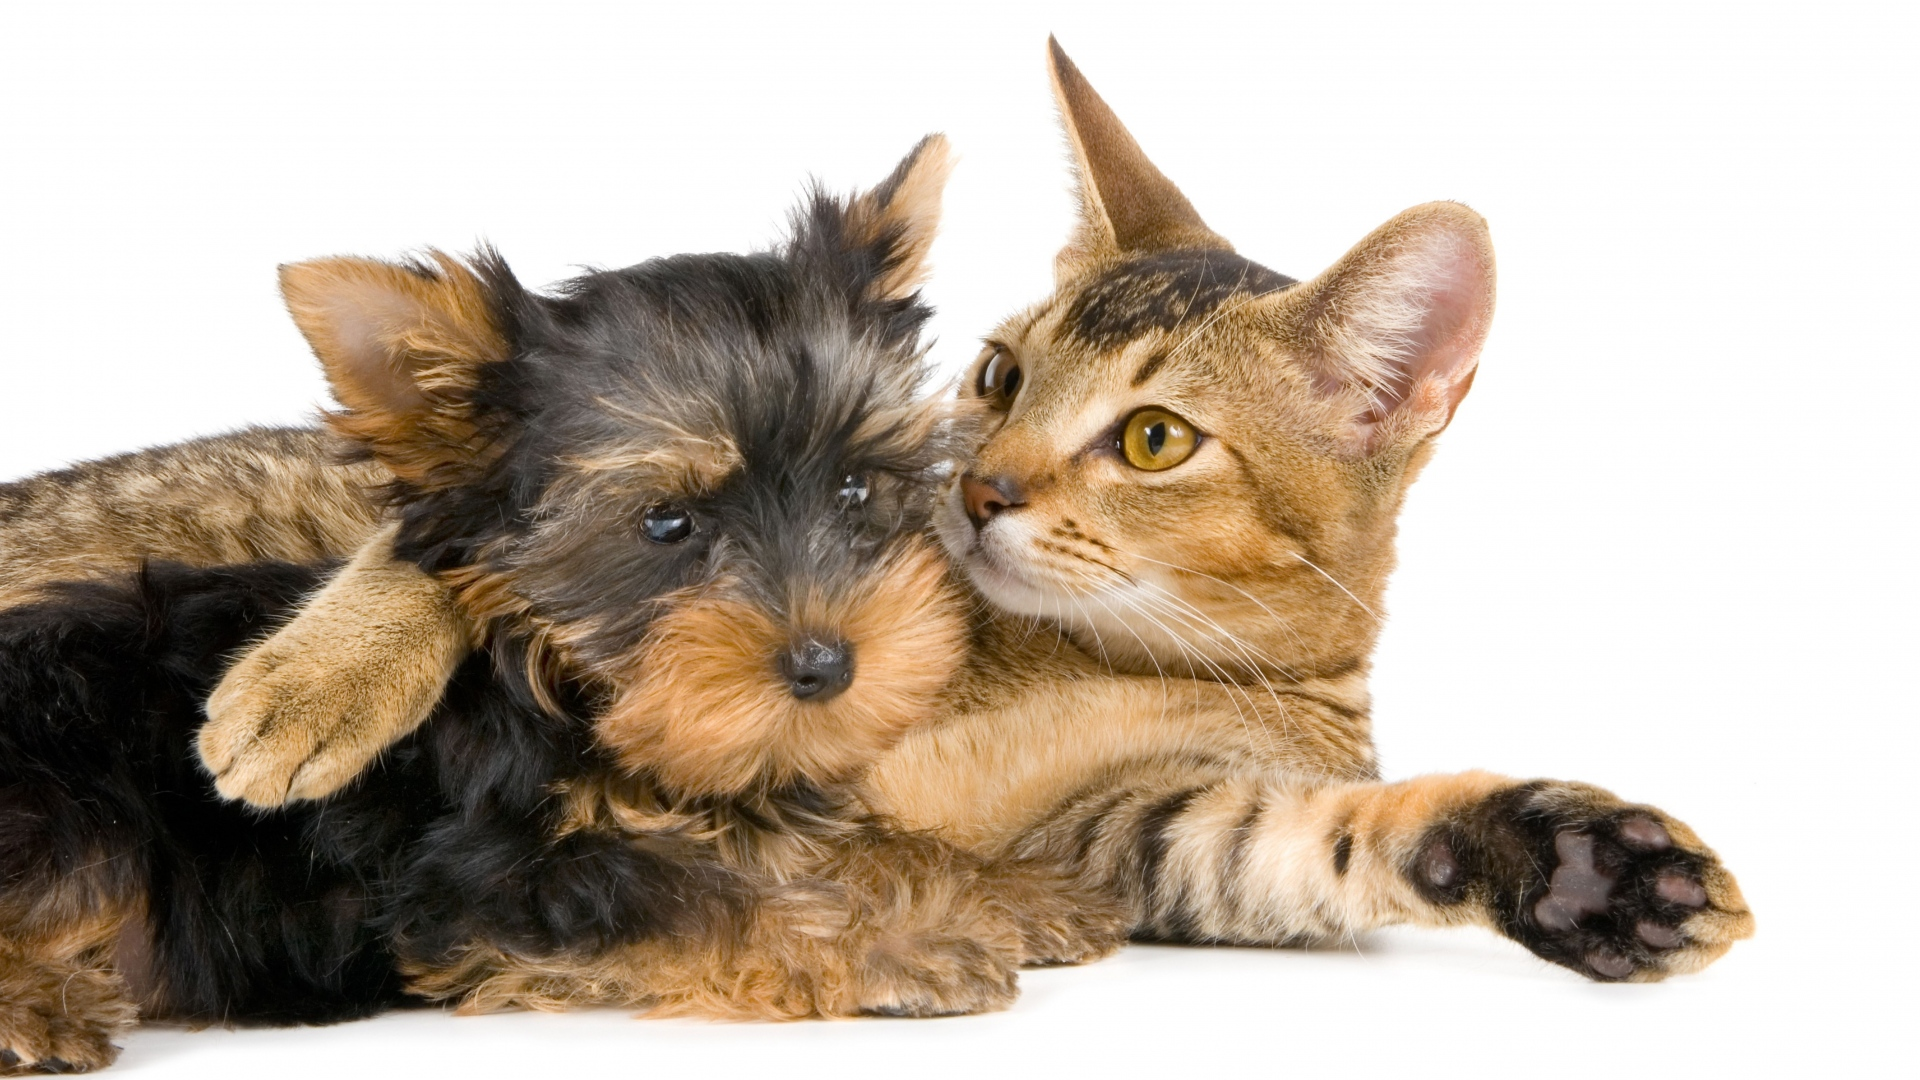 yorkshire_terrier_cat_couple_friendship_59751_1920x1080